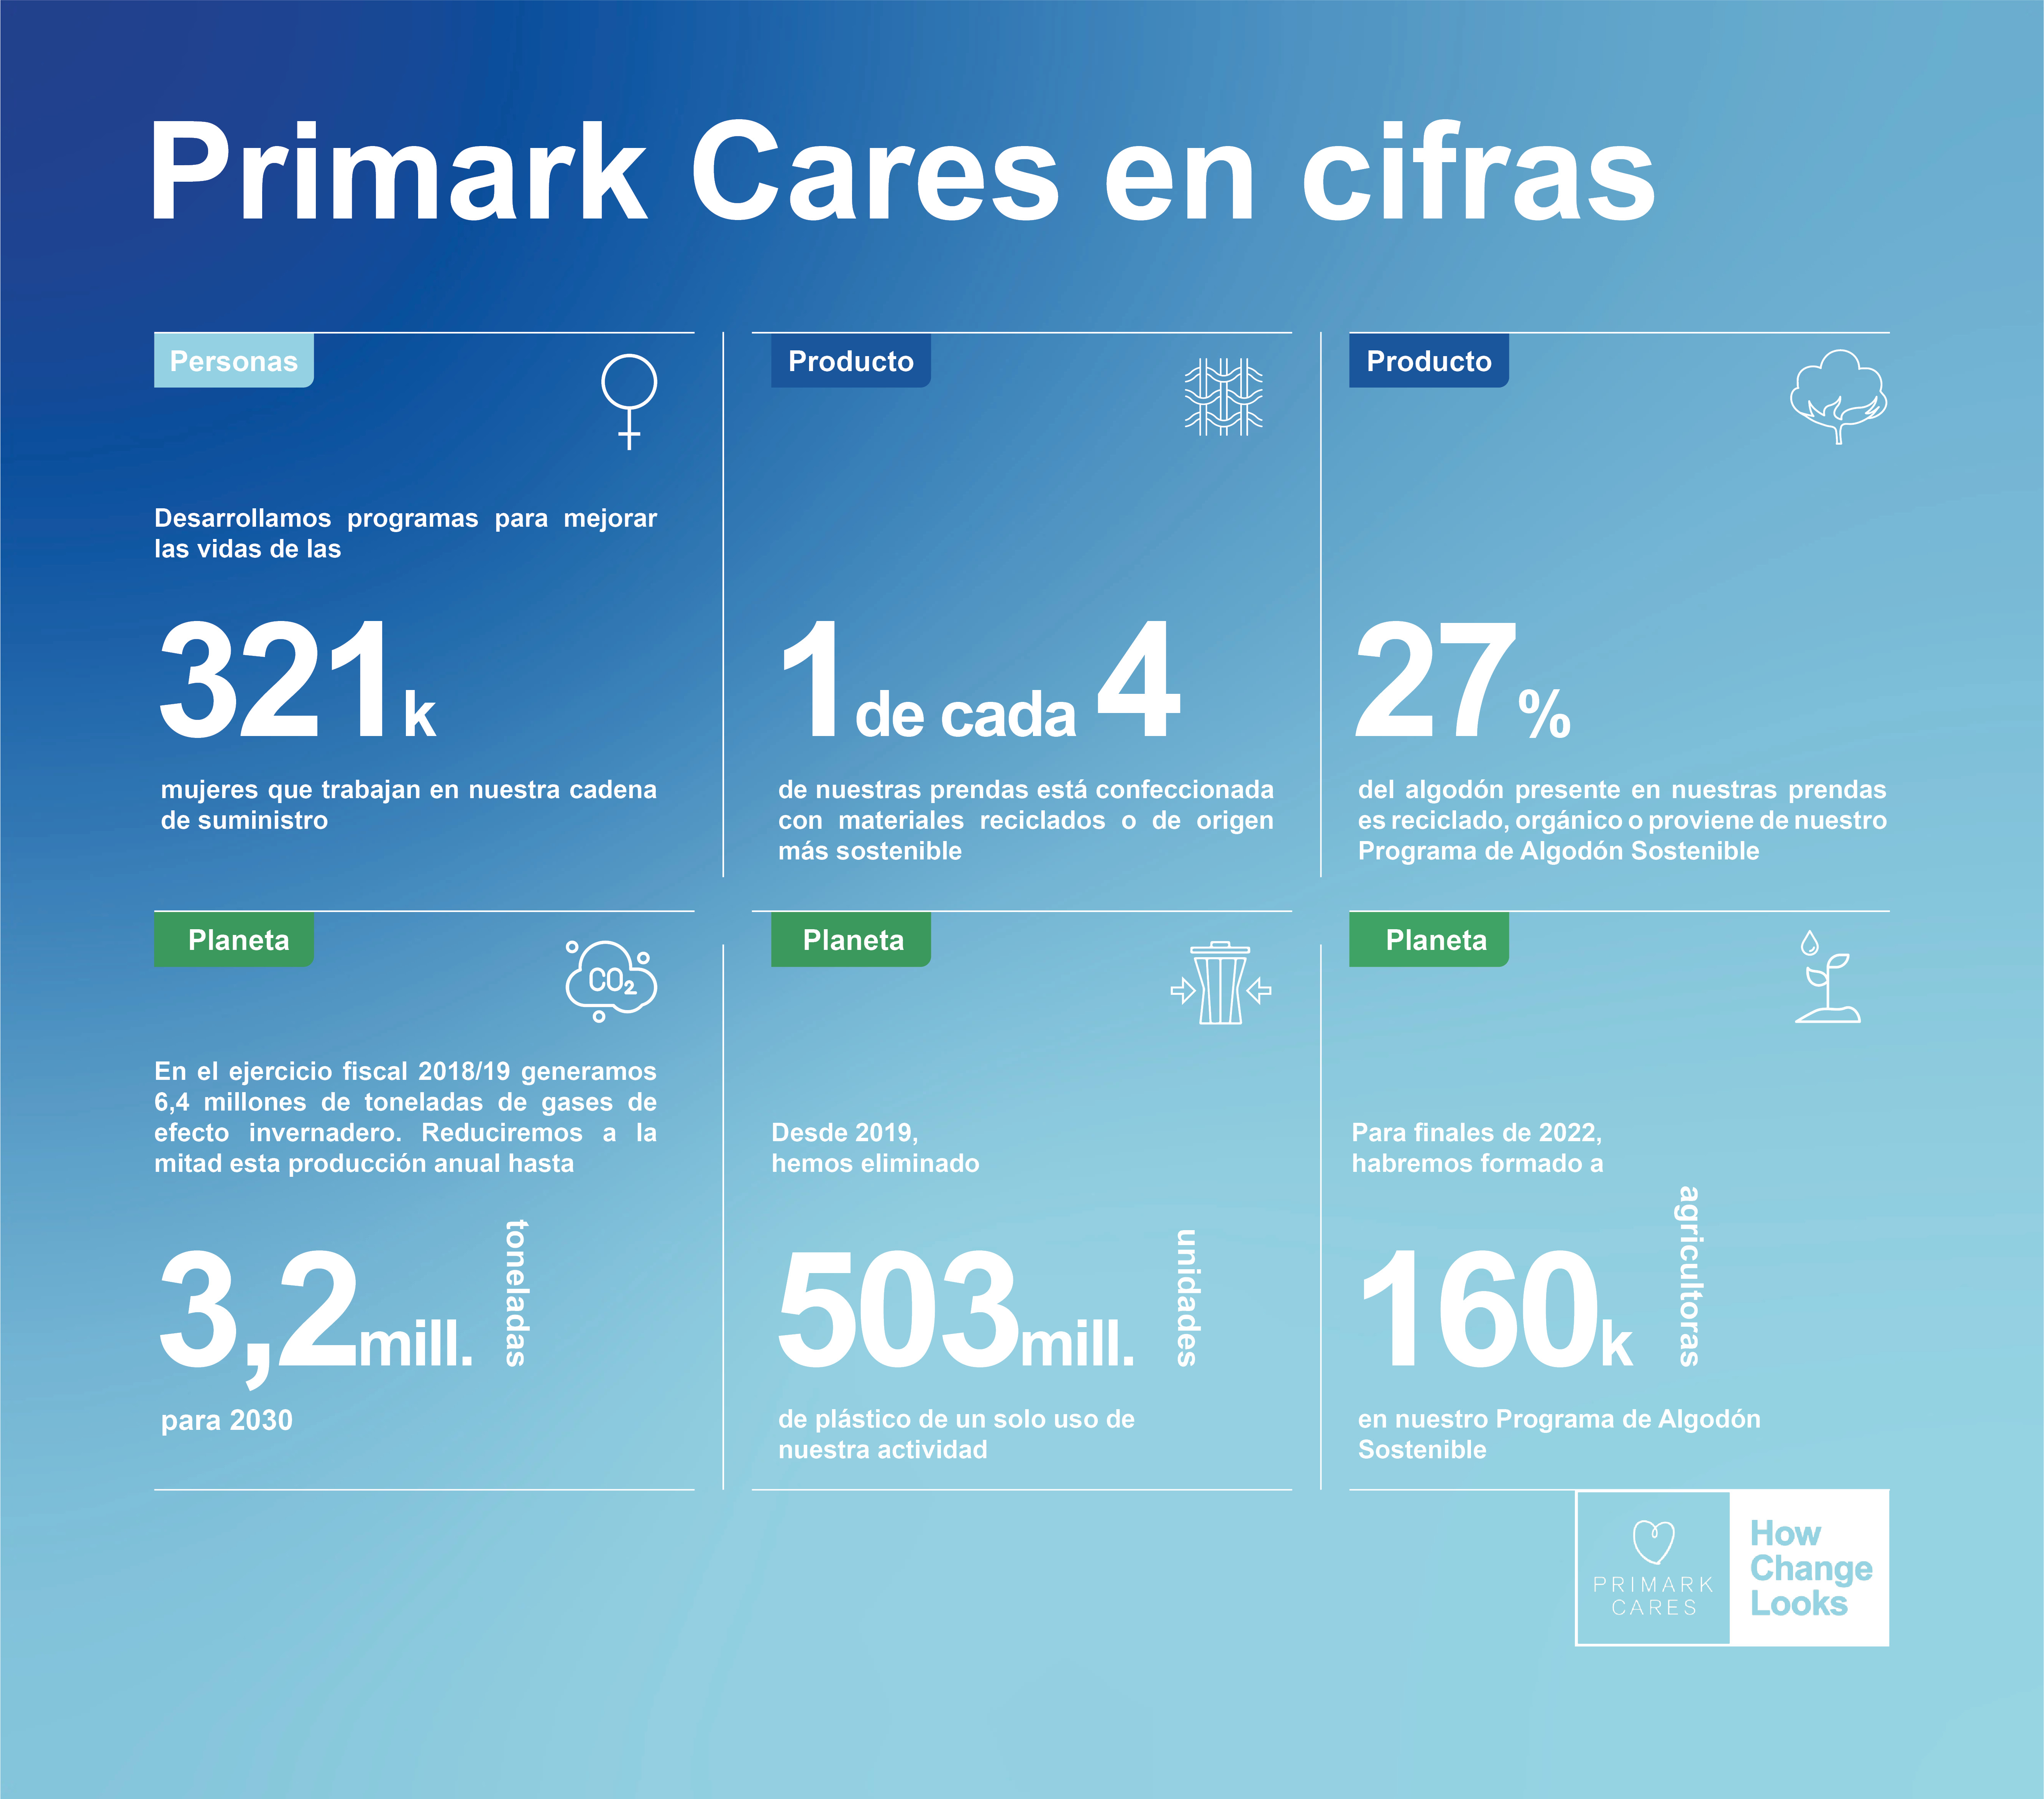 The Image displays an Infographic showing how Primark Cares In Numbers